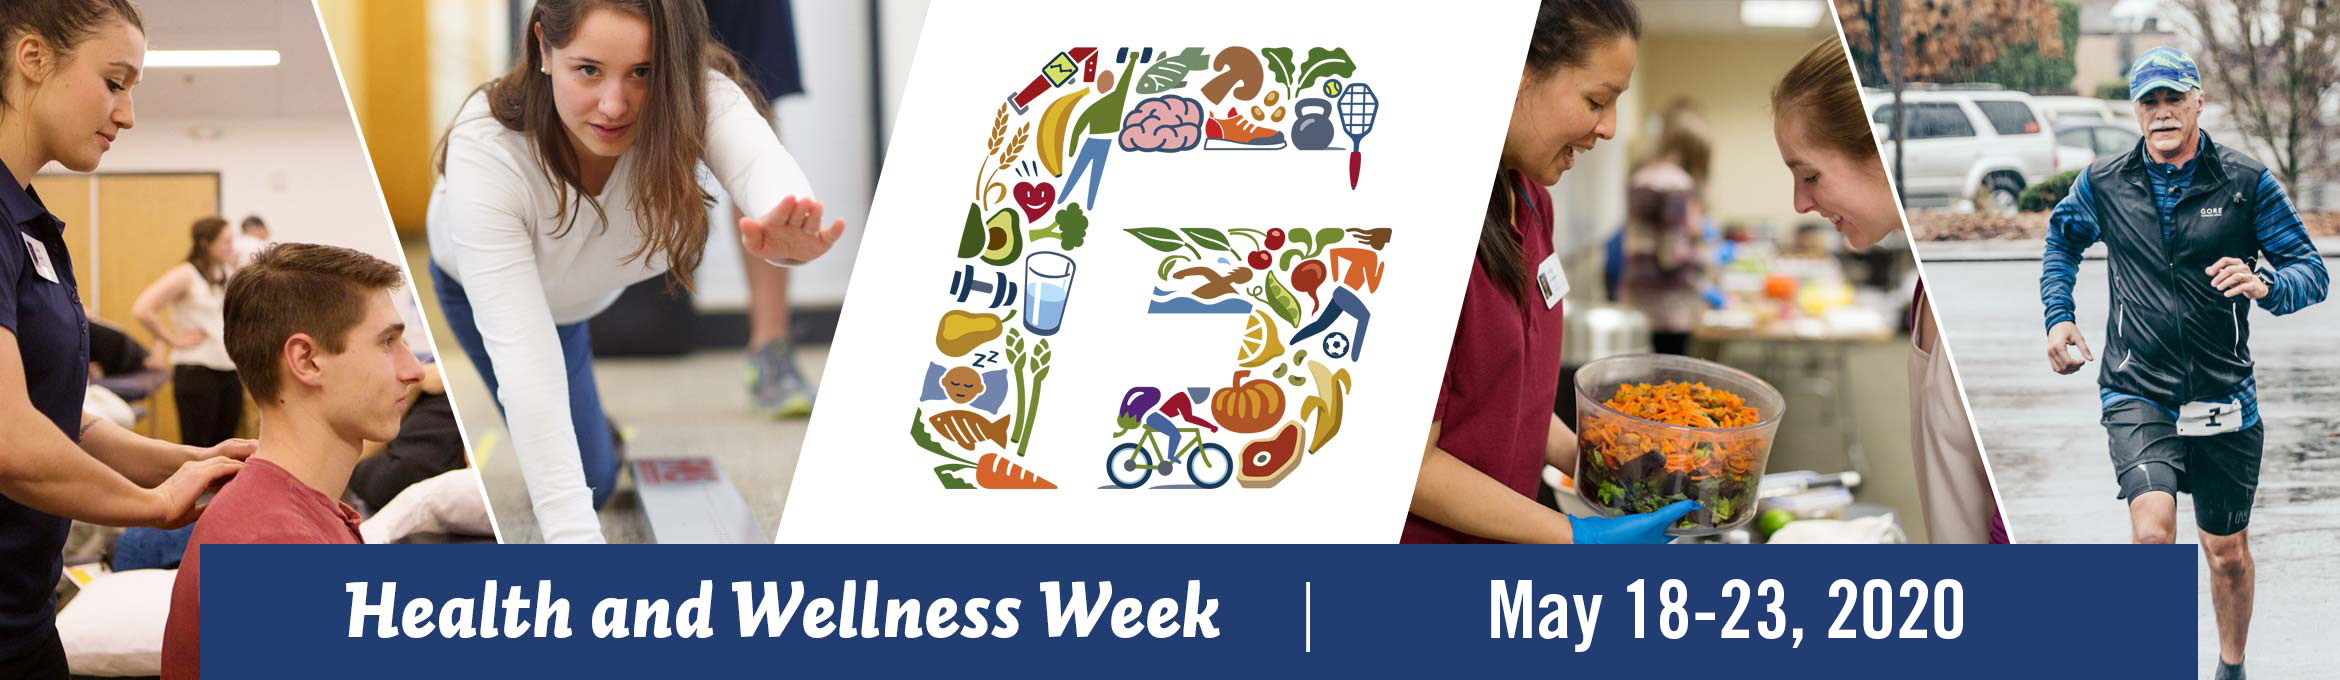 Health and Wellness Week